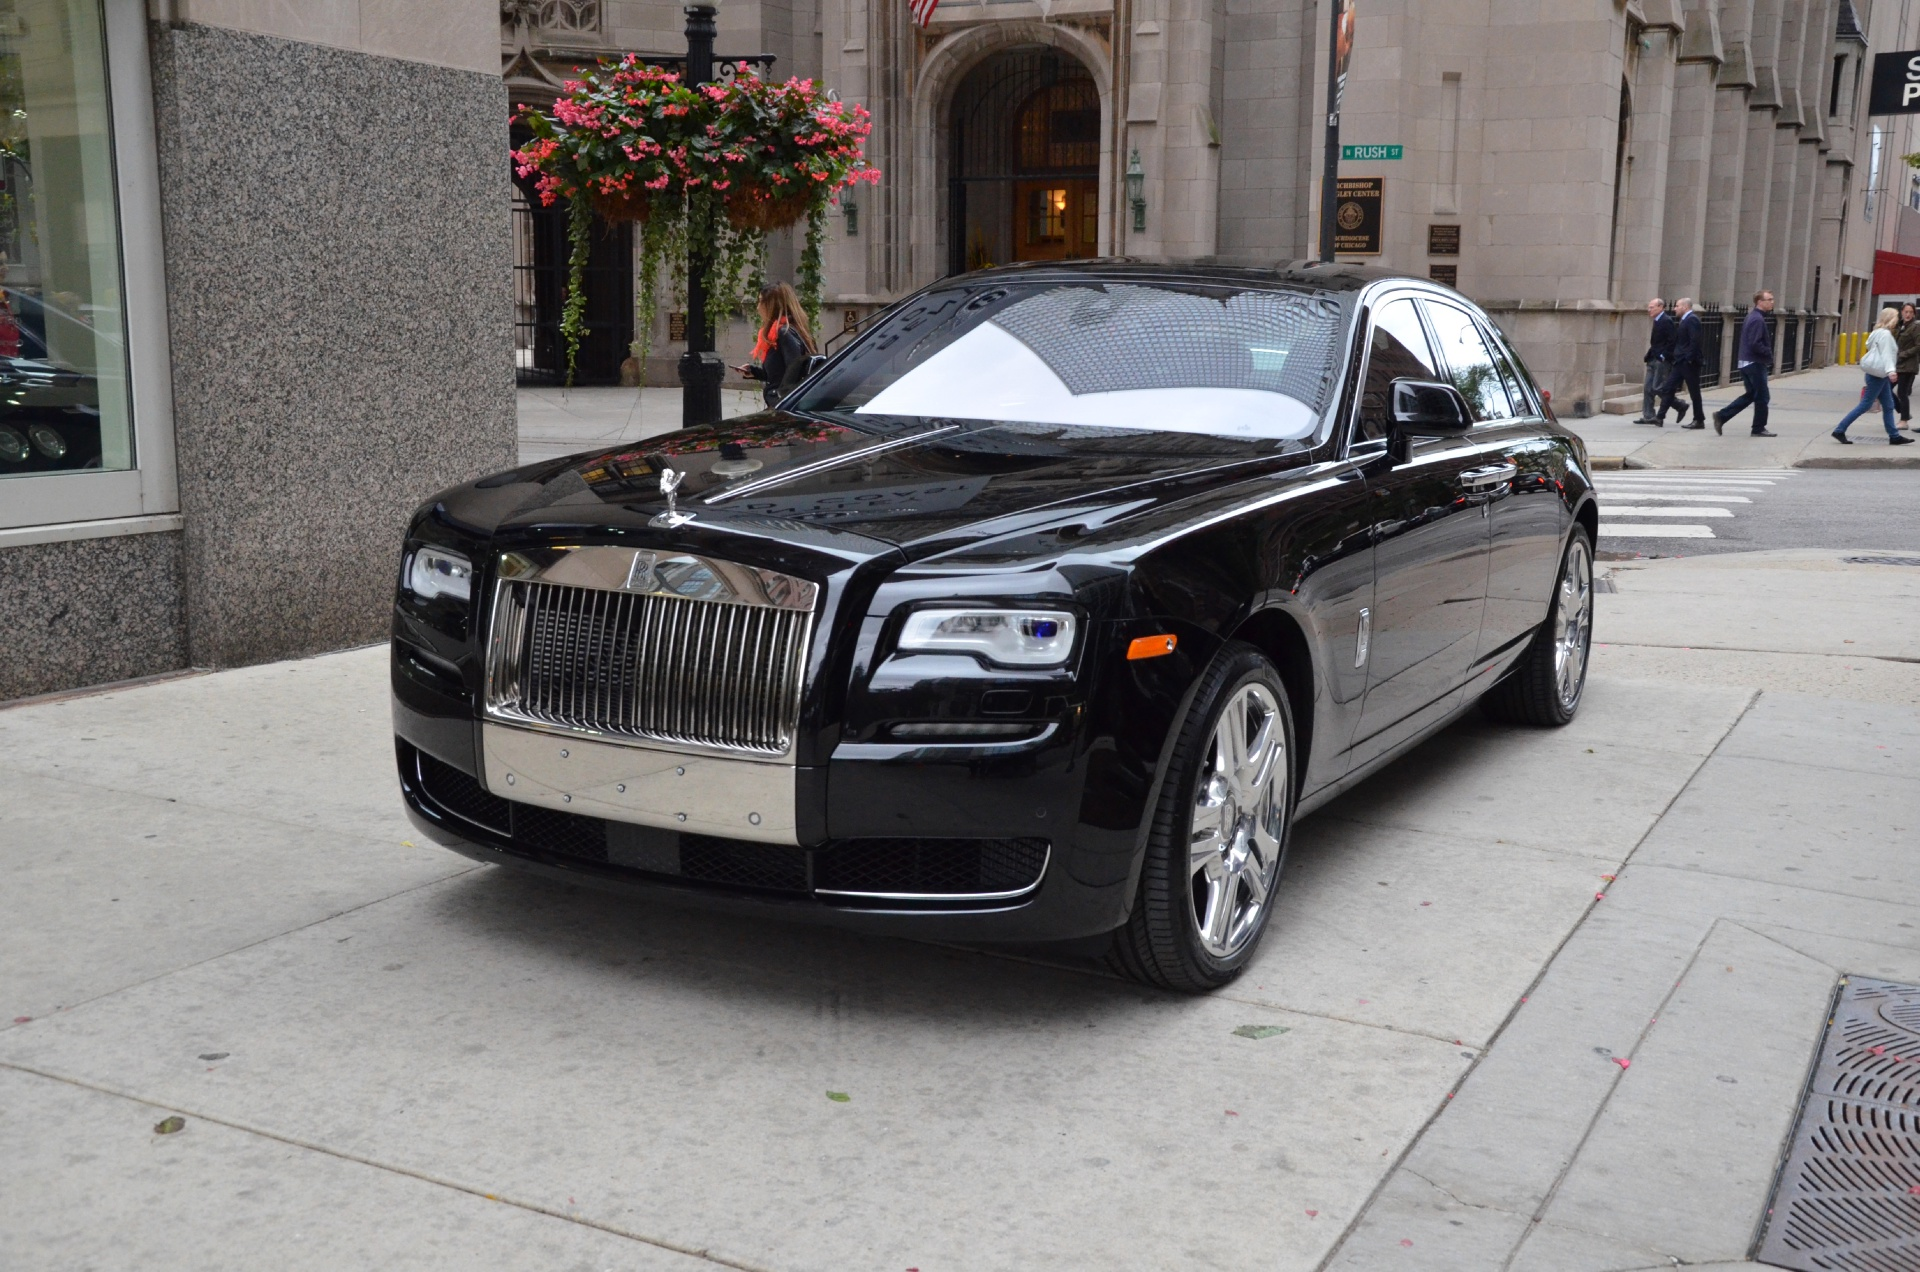 rolls royce ghost 2015 black. new 2015 rollsroyce ghost series ii chicago il rolls royce black bentley gold coast